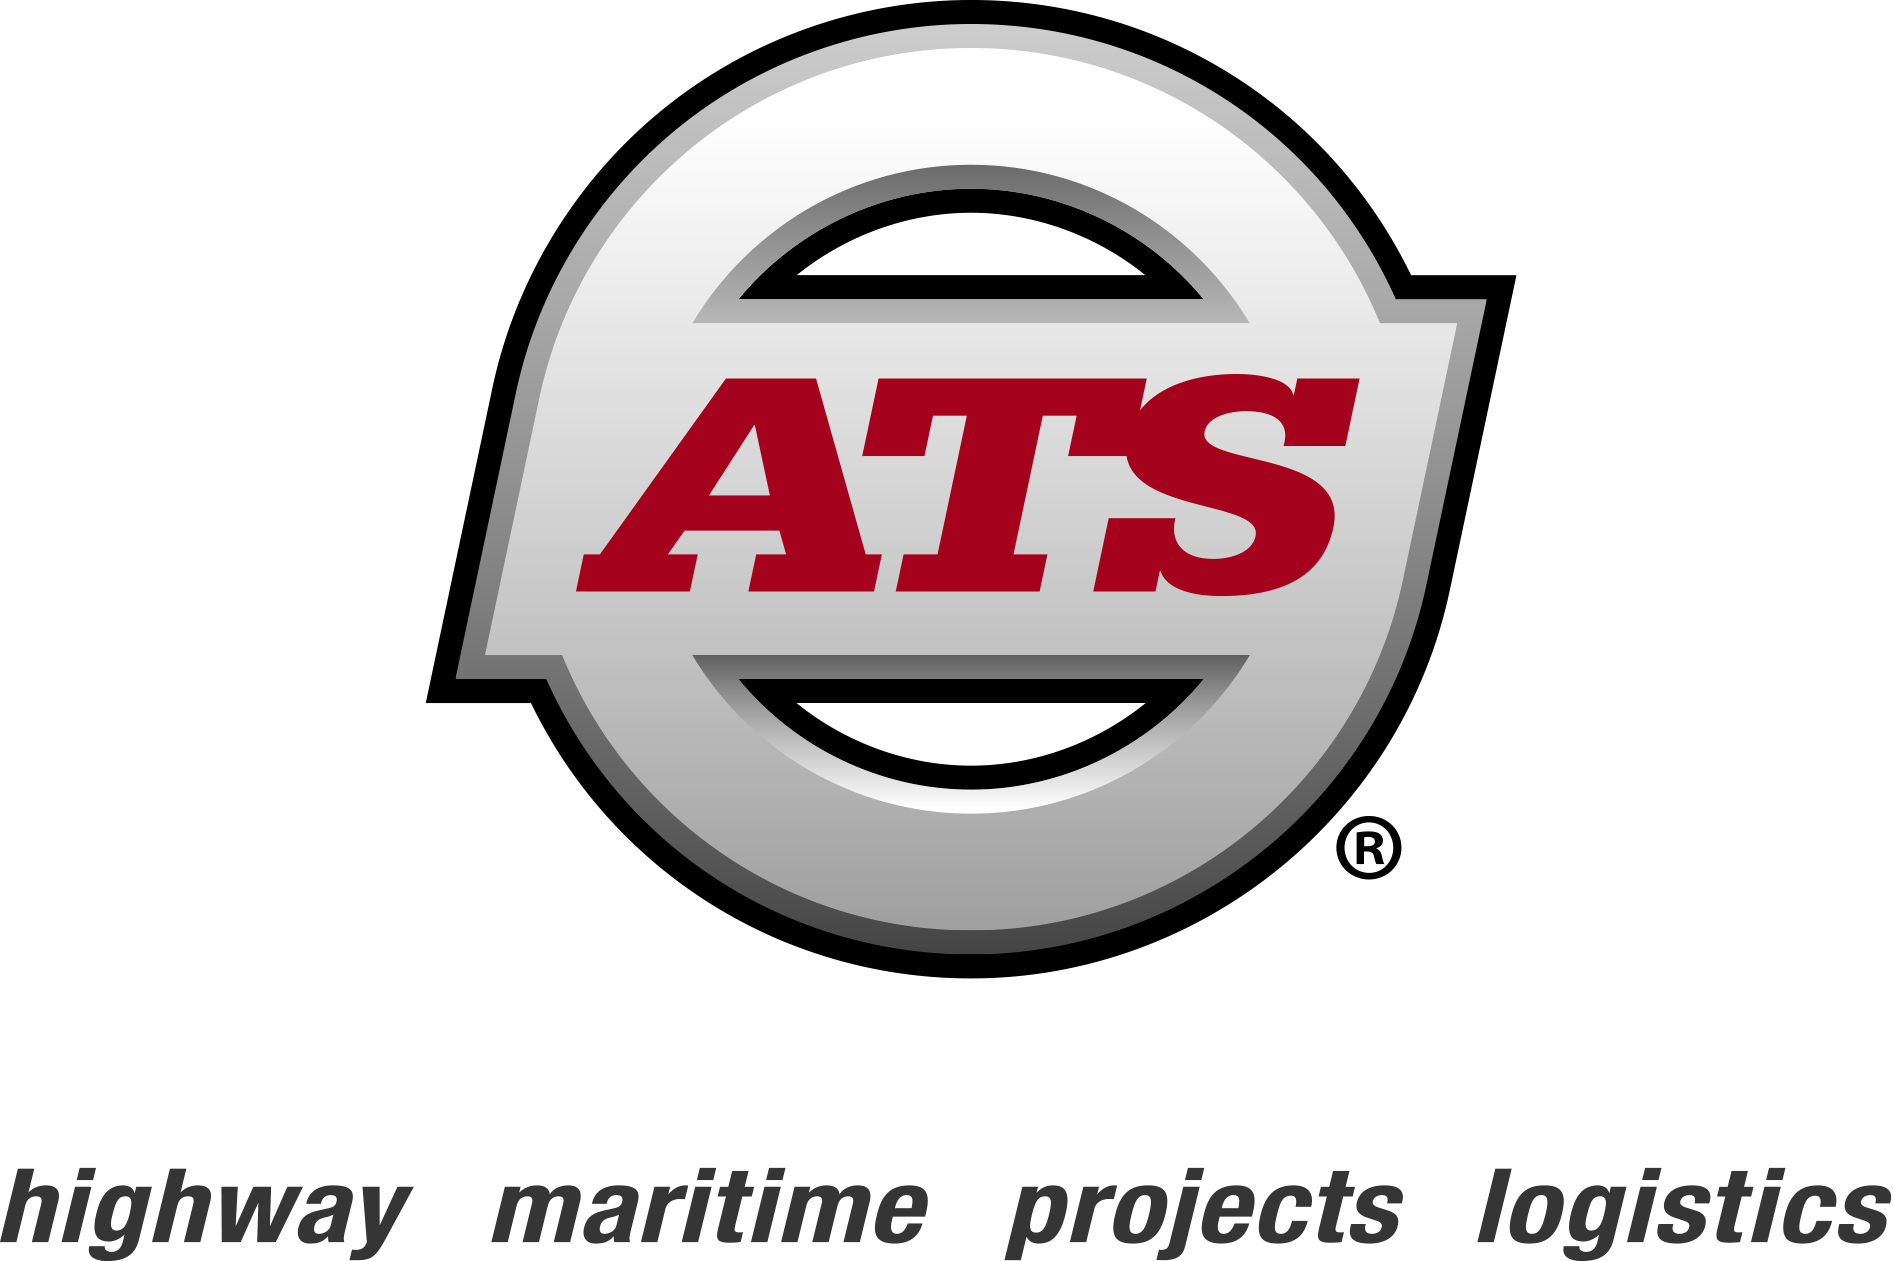 ATS Logo HMPL_4c approved to use.jpg